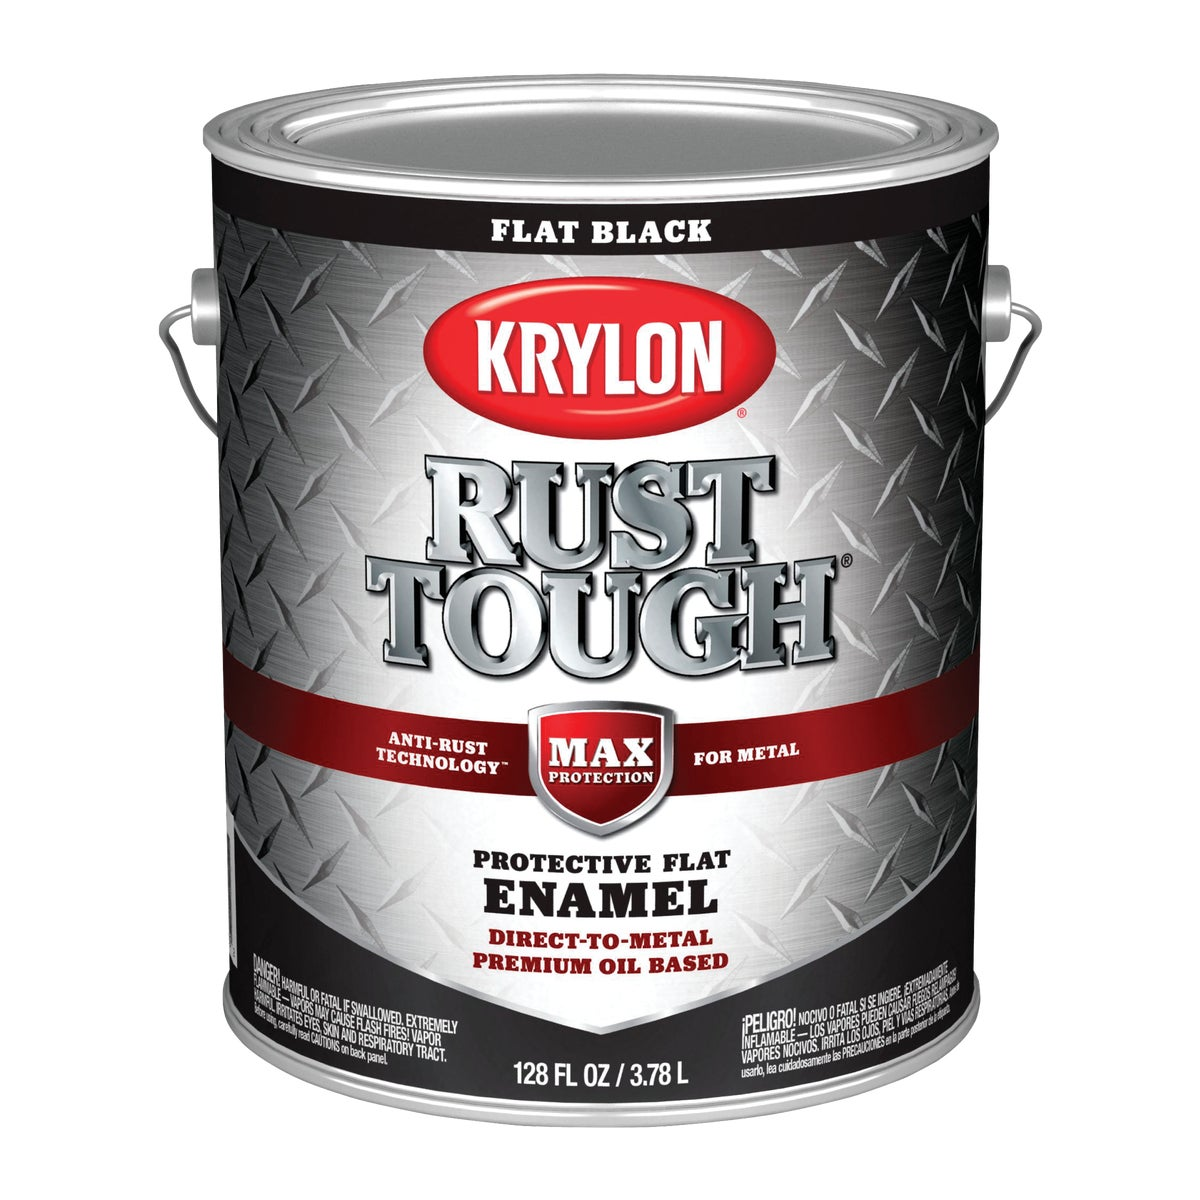 FLAT BLACK RUST ENAMEL - 044.0021826.007 by Valspar Corp